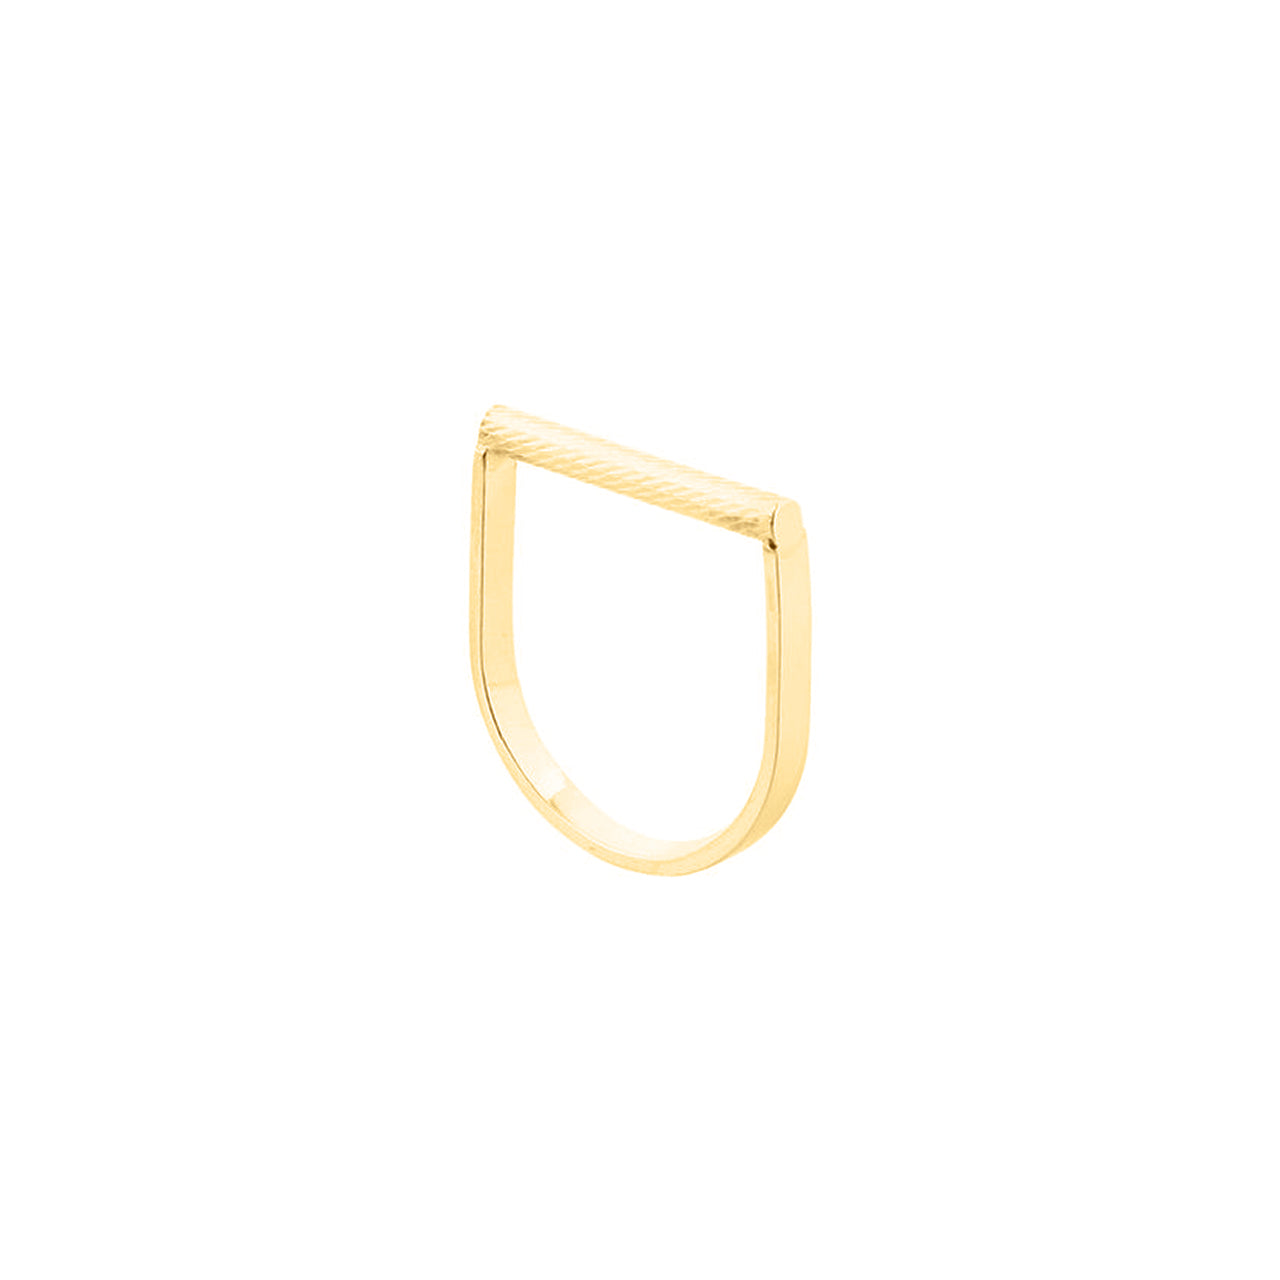 gold engraved round bar u-shape ring